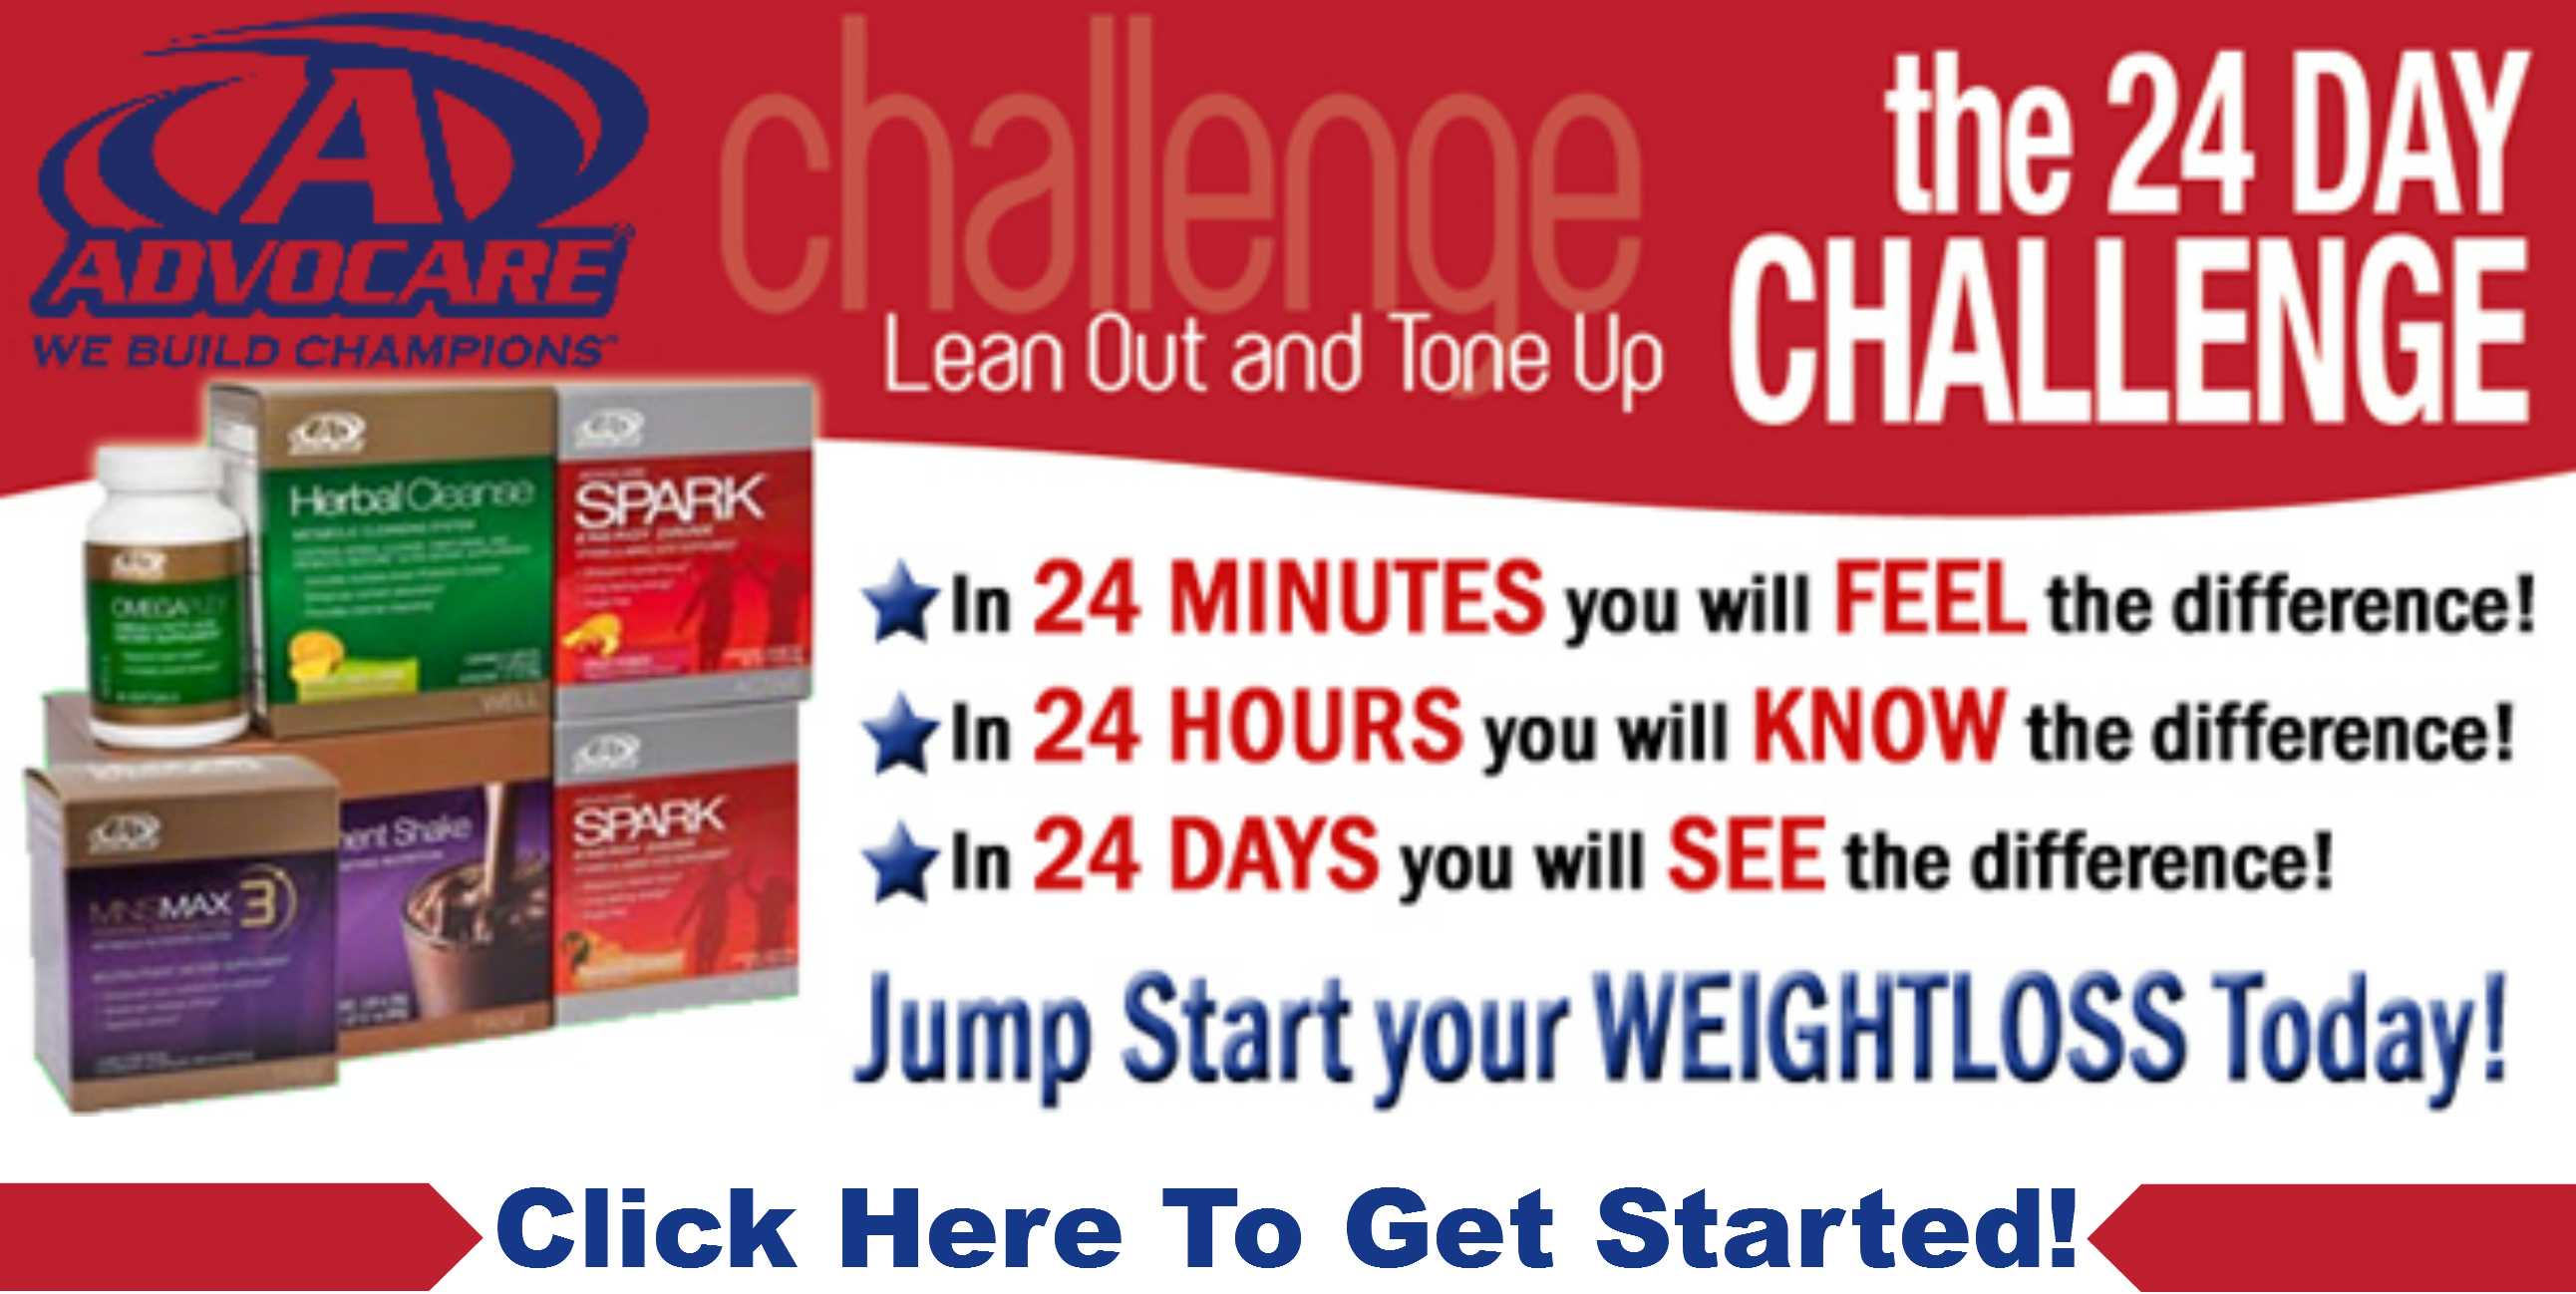 ... TON OF ENERGY, EAT REAL FOOD ALONG THE WAY AND DO IT IN ONLY 24 DAYS